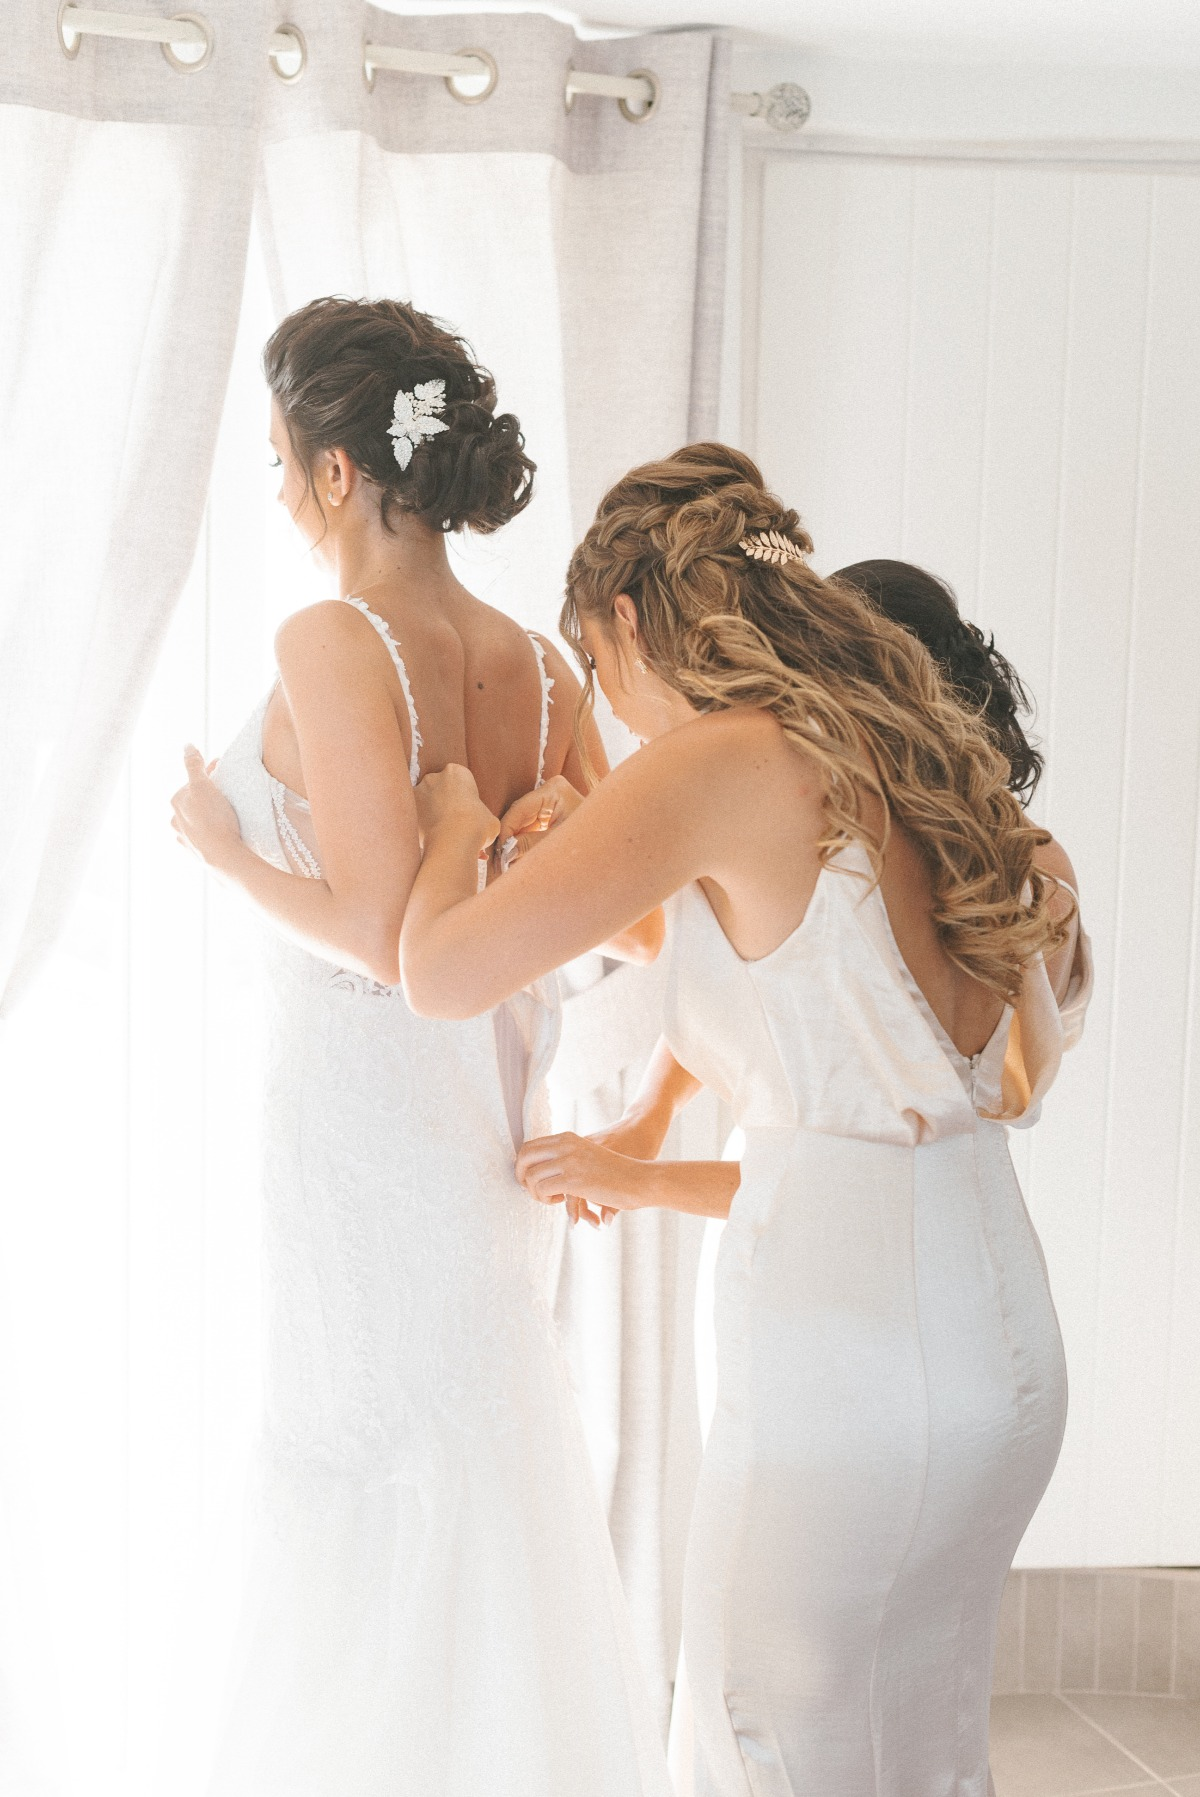 getting wedding ready with bridesmaids